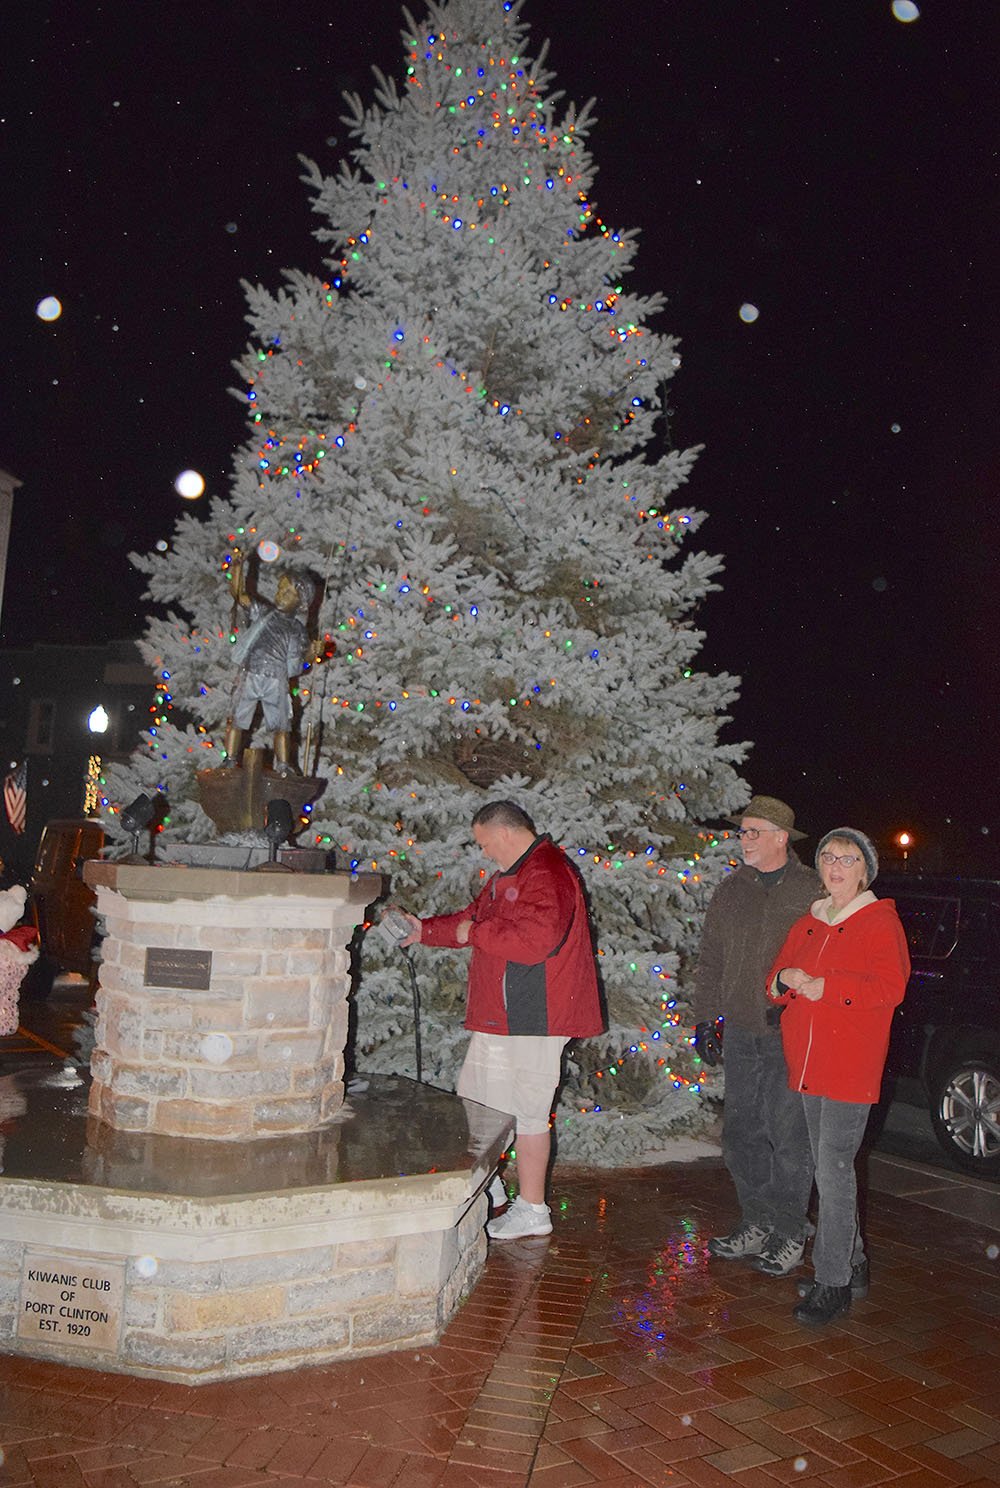 Couple honored at Port Clinton Christmas Tree lighting event